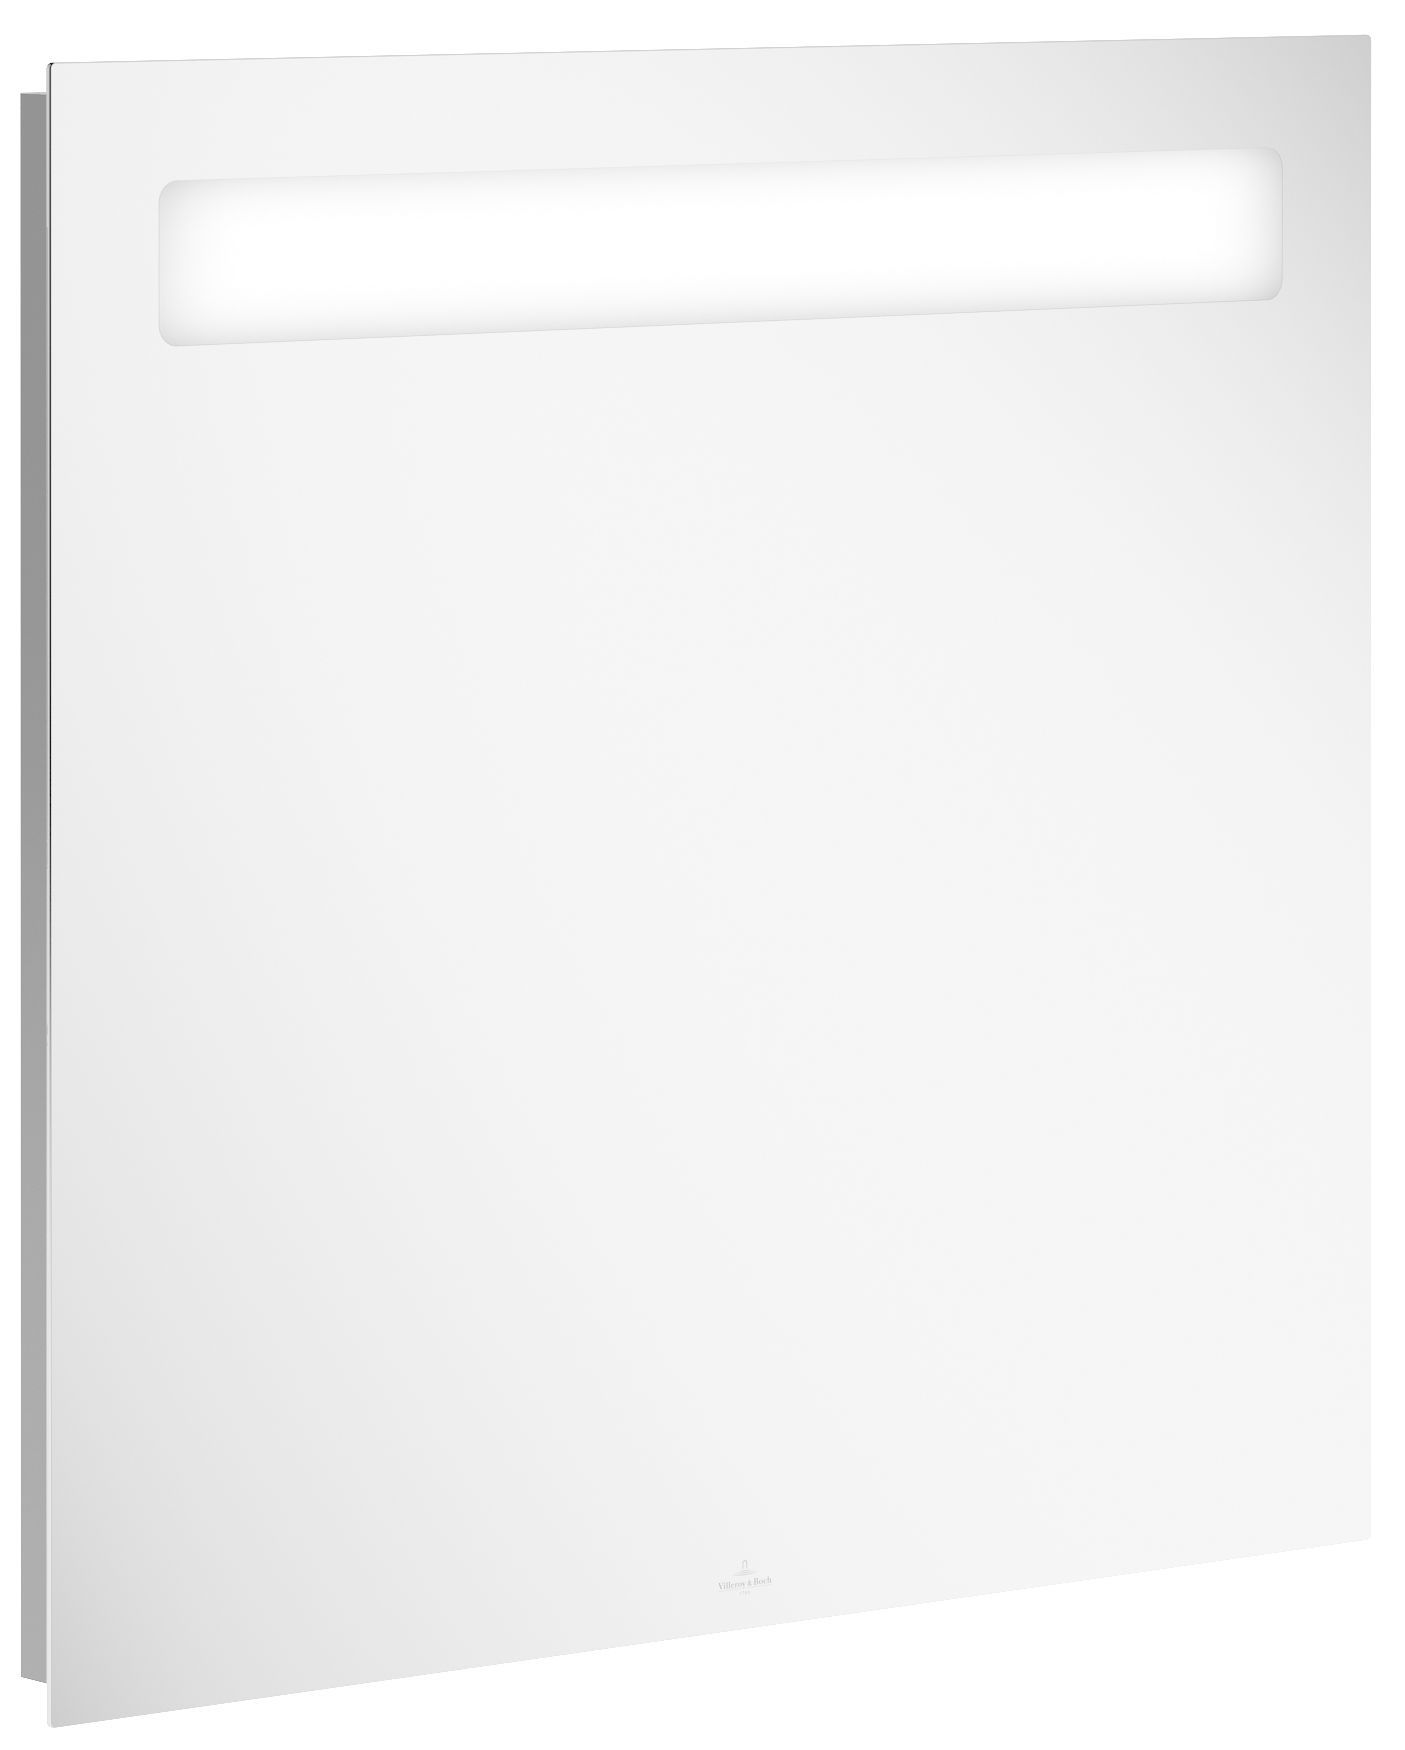 Villeroy & Boch More to See 14 Spiegel mit LED-Beleuchtung B: 80cm A4298000